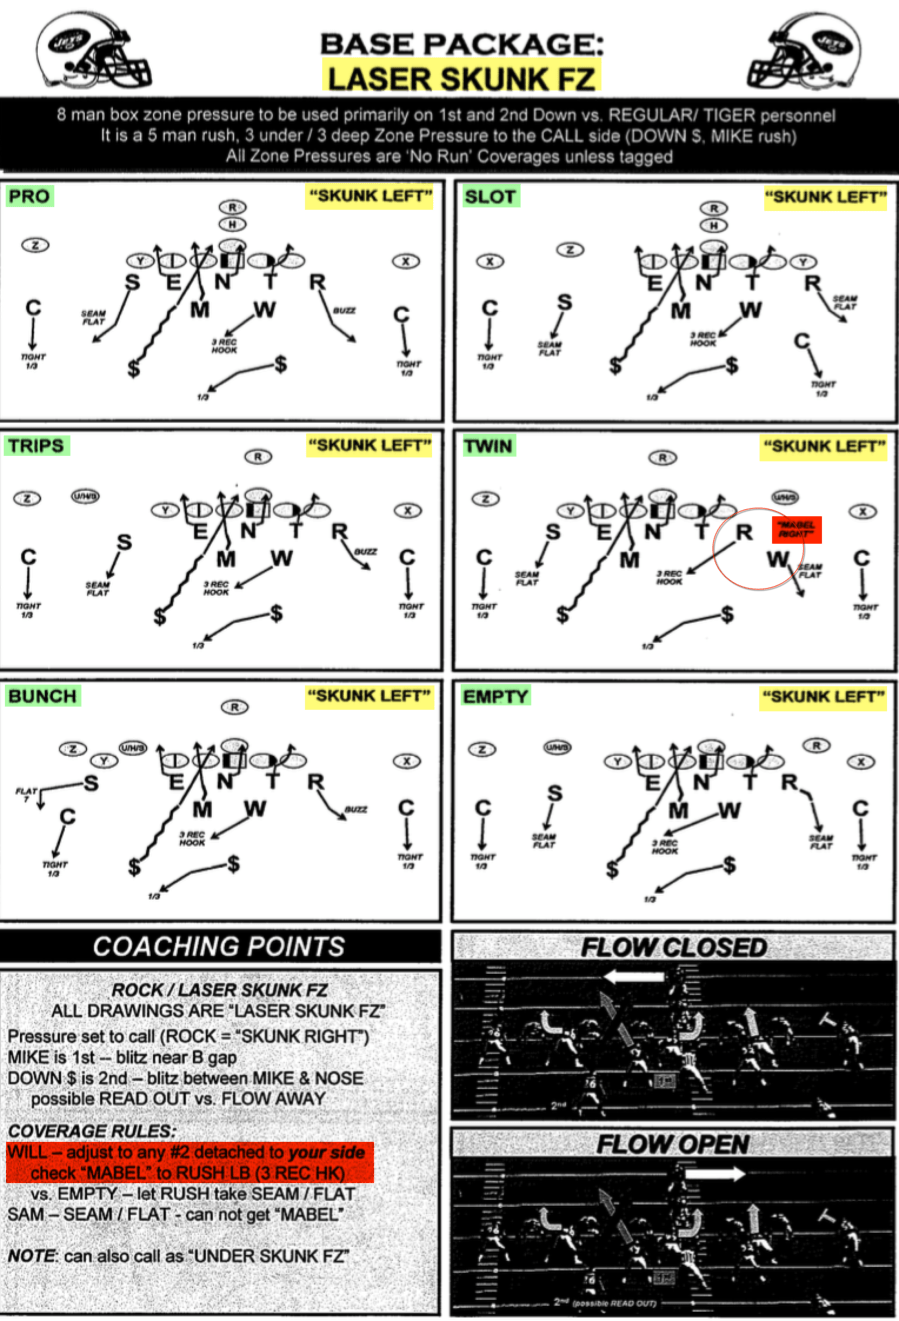 I highlighted the play-call in yellow at the very top of the image- LASER SKUNK FZ, what does that mean? LASER= The defensive front= 4-3 Under Skunk FZ= The play-call. It is a zone blitz where the MIKE LB blitzes first through the call side B gap, and the down $AFETY blitzes between the MIKE and NT (A gap). Each of those boxes has the offensive formation highlighted green. The defenders must know how to align versus each and every formation an offense throws at them. So those terms must be universally recognized by everyone on the defense. In the bottom left hand corner you see a box titled Coaching Points. These are details that need to be stressed by the staff when certain things occur. Such as the adjustment that I highlighted in red. If you look at the Twins offensive set you will see the MABEL call that is outlined in the coaching point. When the WILL LB (Bradham/Lawson) has a detached #2 WR/a guy in the slot, he and the RUSH LB (Hughes) must check MABEL. ALL this means is that the WILL and RUSH LB are switching assignments. Normally the WILL has the 3rd rec/hook to curl and the Rush LB drops to the seam/flats. On MABEL calls, the RUSH LB takes the 3rd rec/hook to curl and the WILL has seam to flats because he is aligned out wide with the #2 WR.